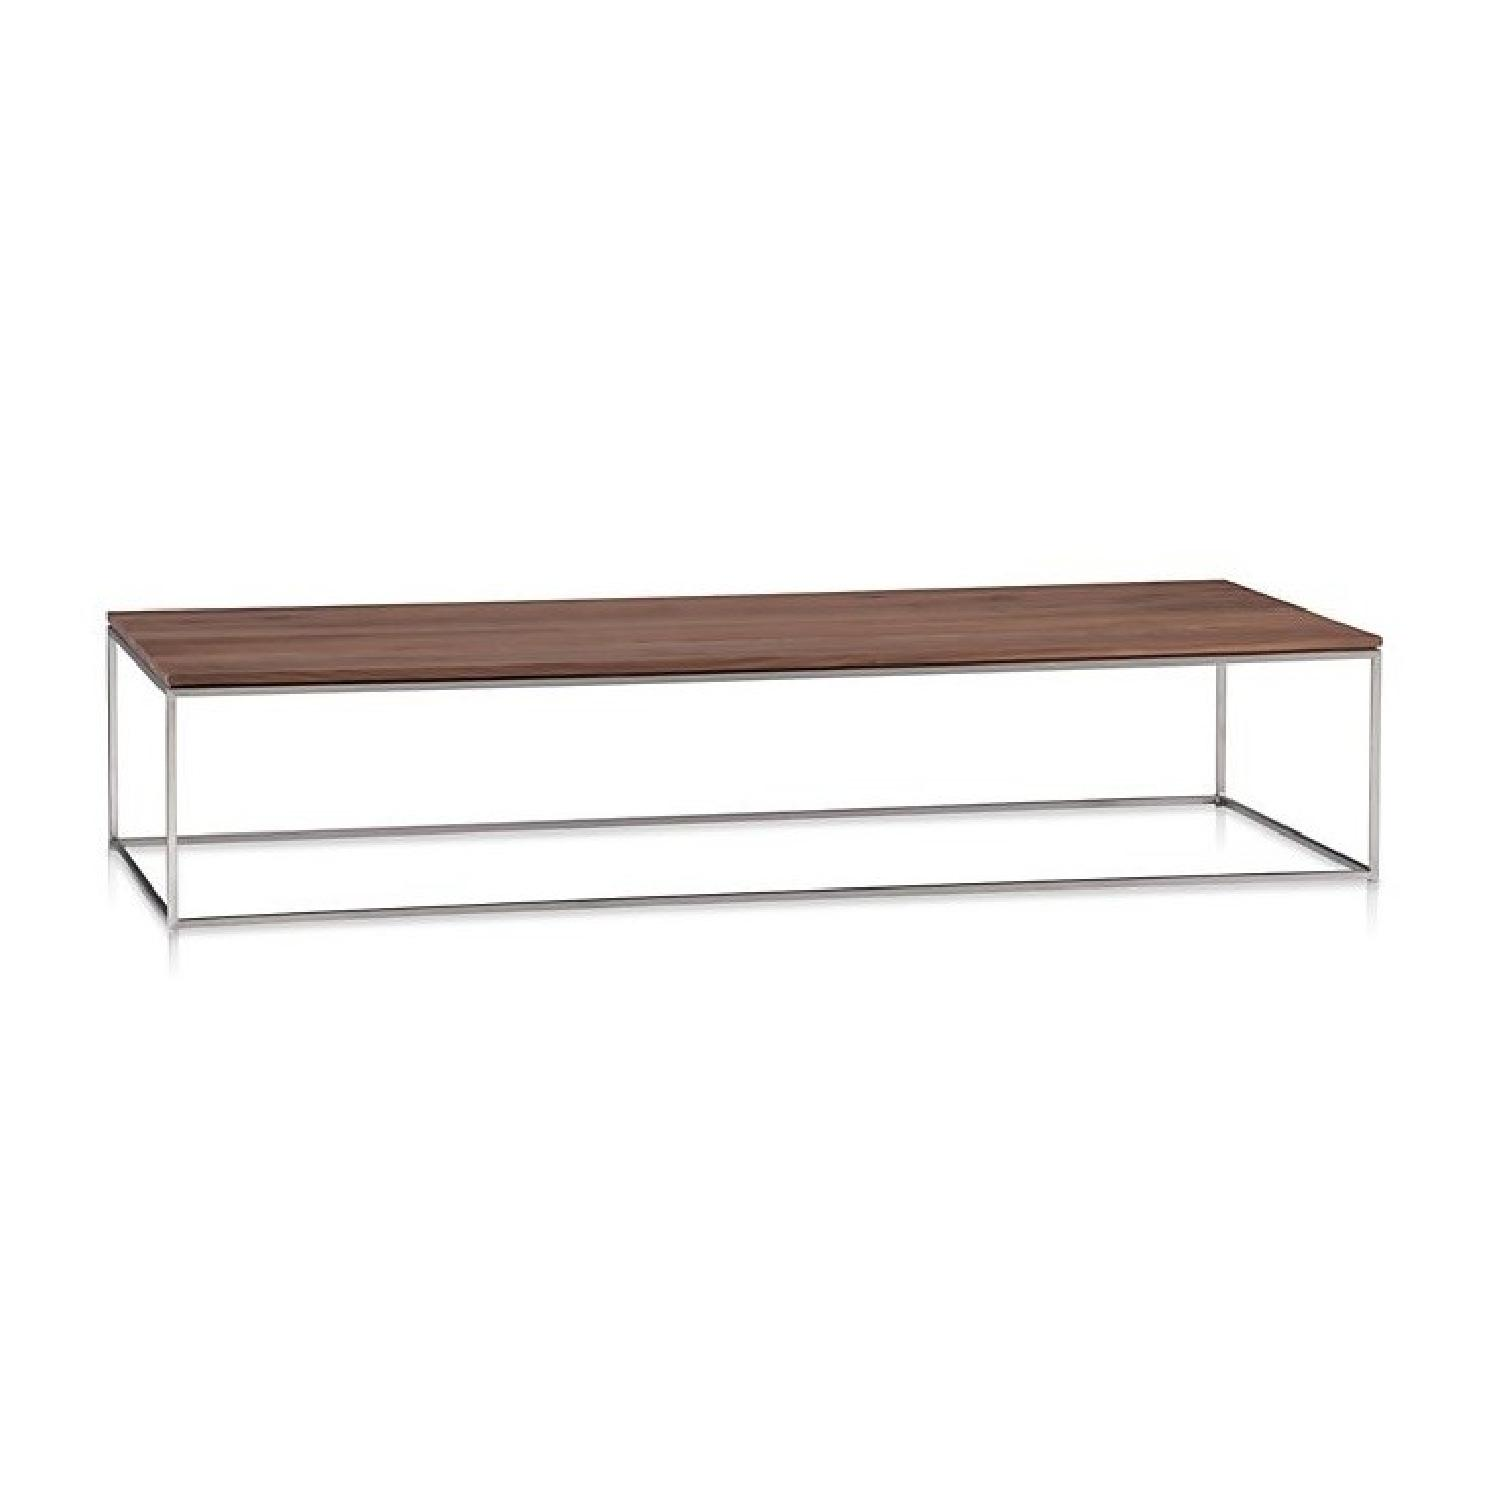 Crate & Barrel Frame Coffee Table-3